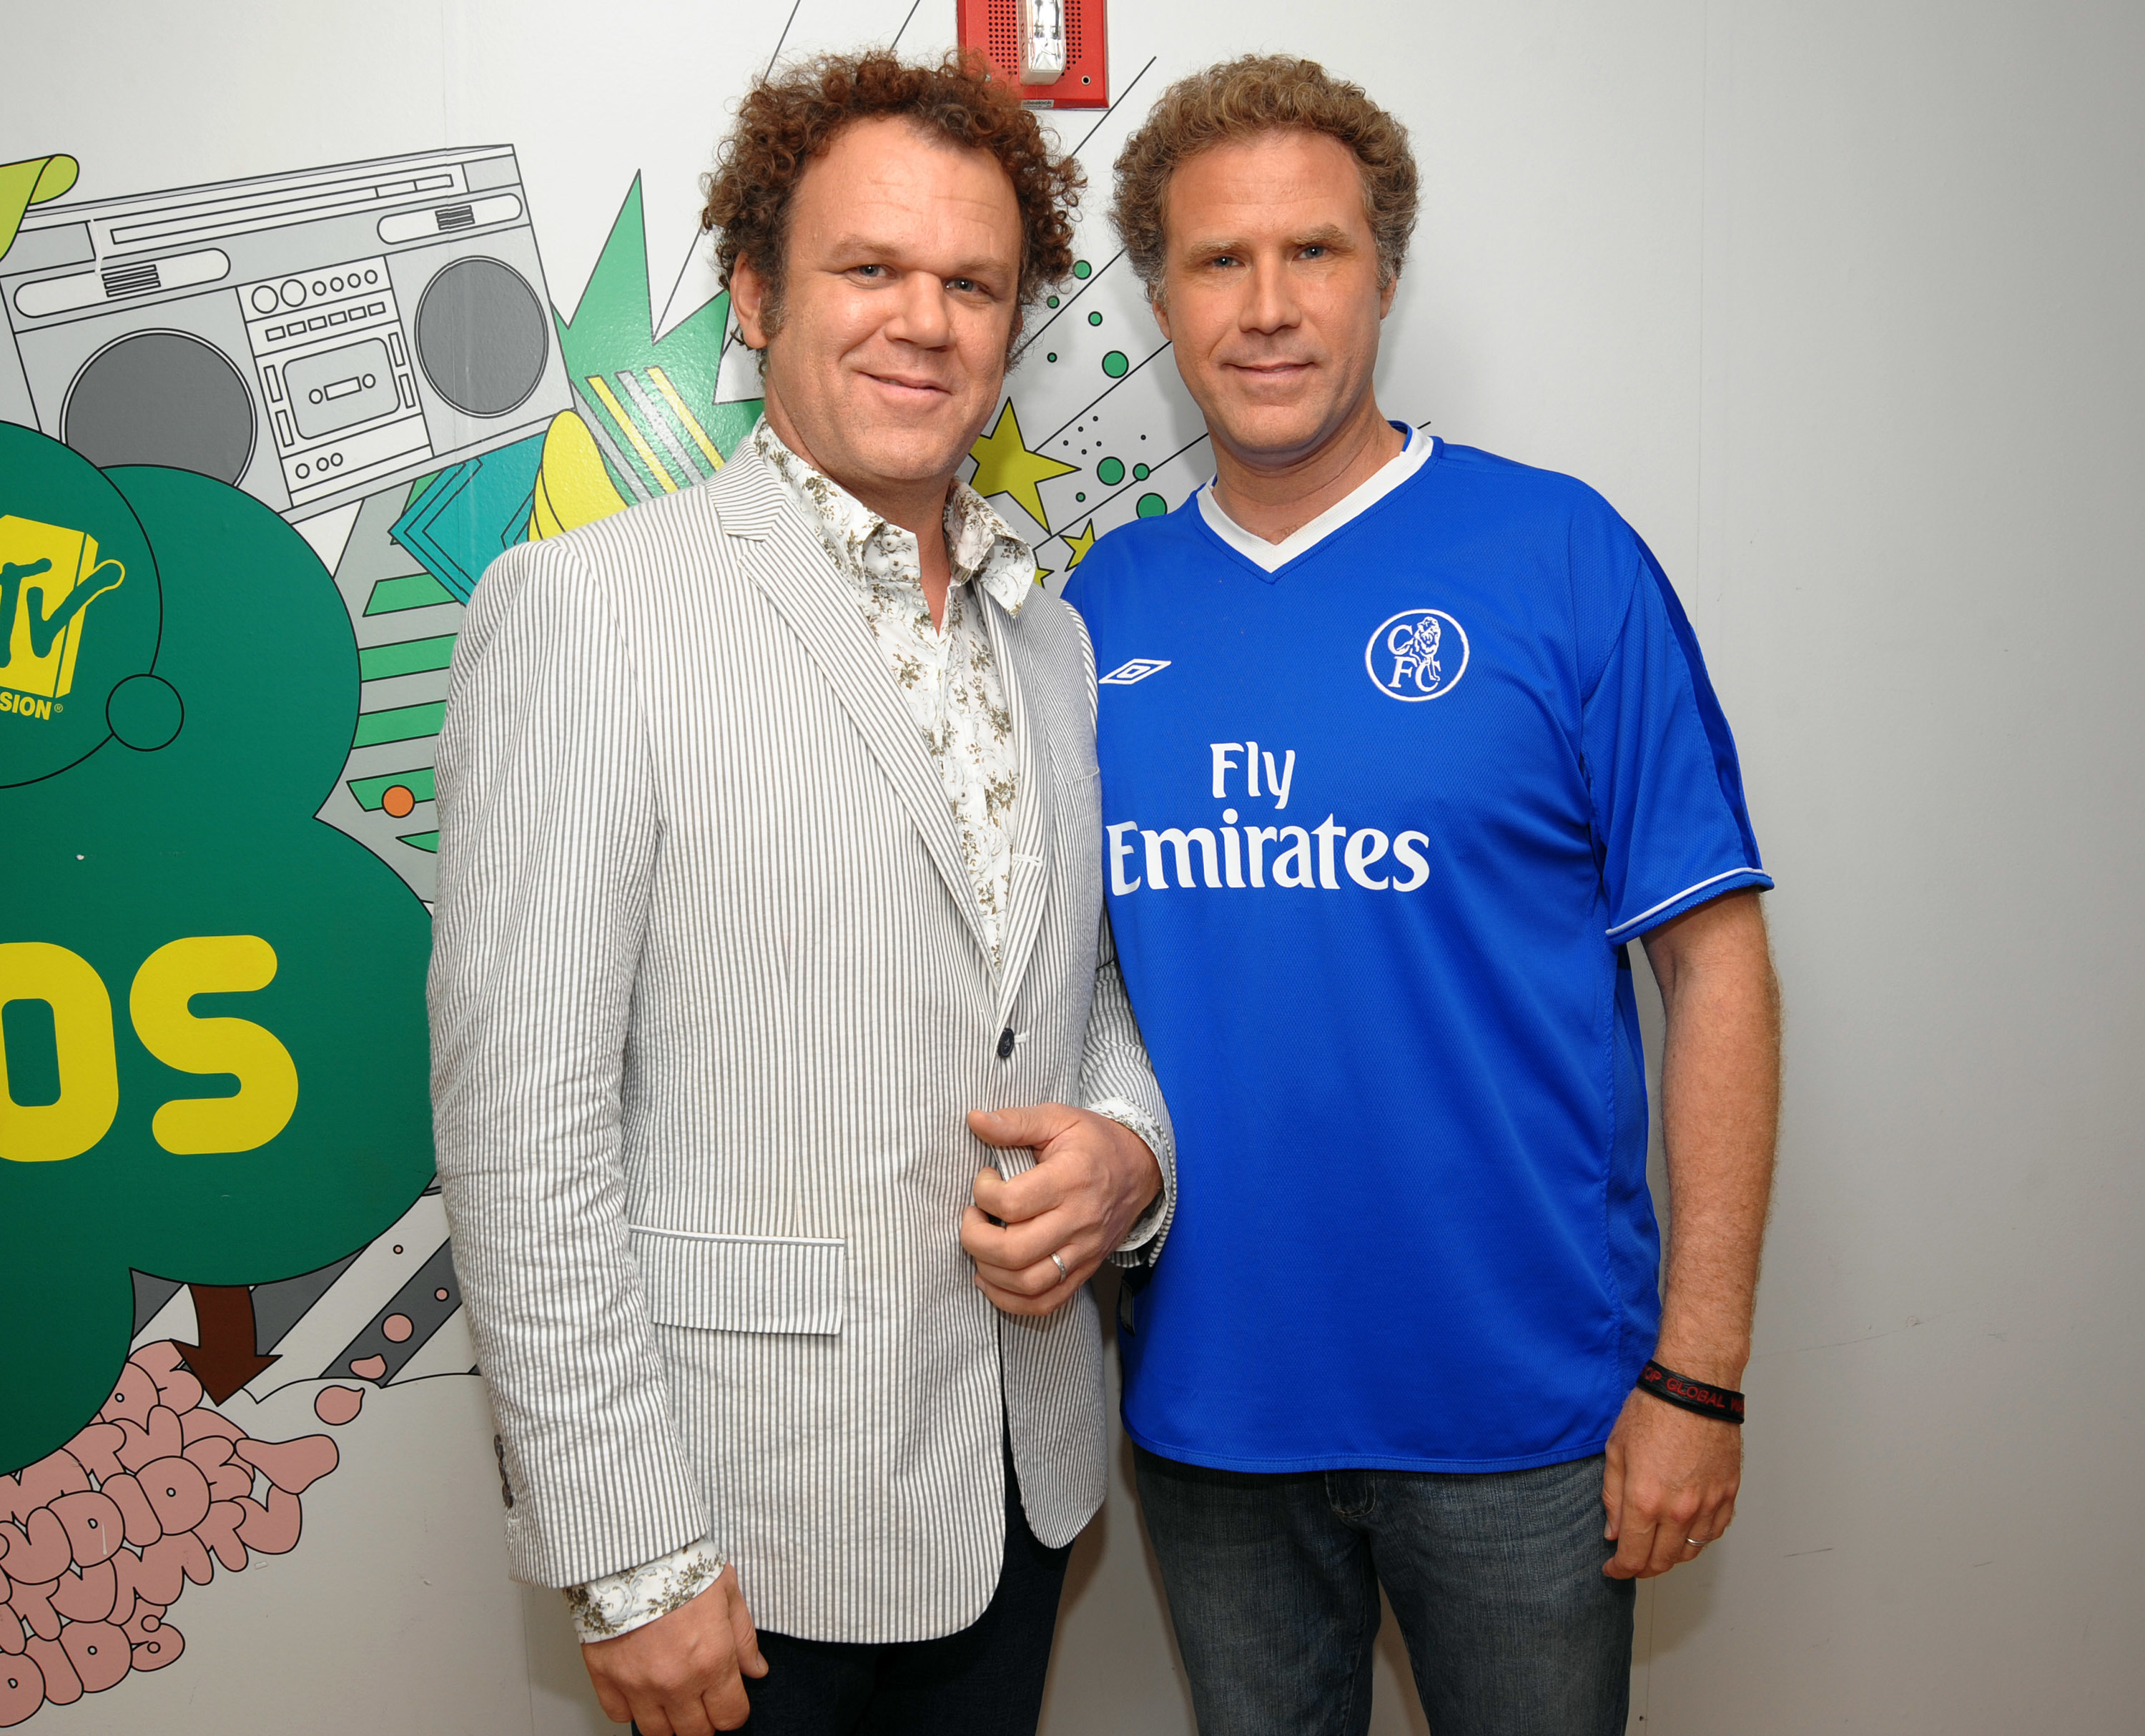 will ferrell john c. reilly